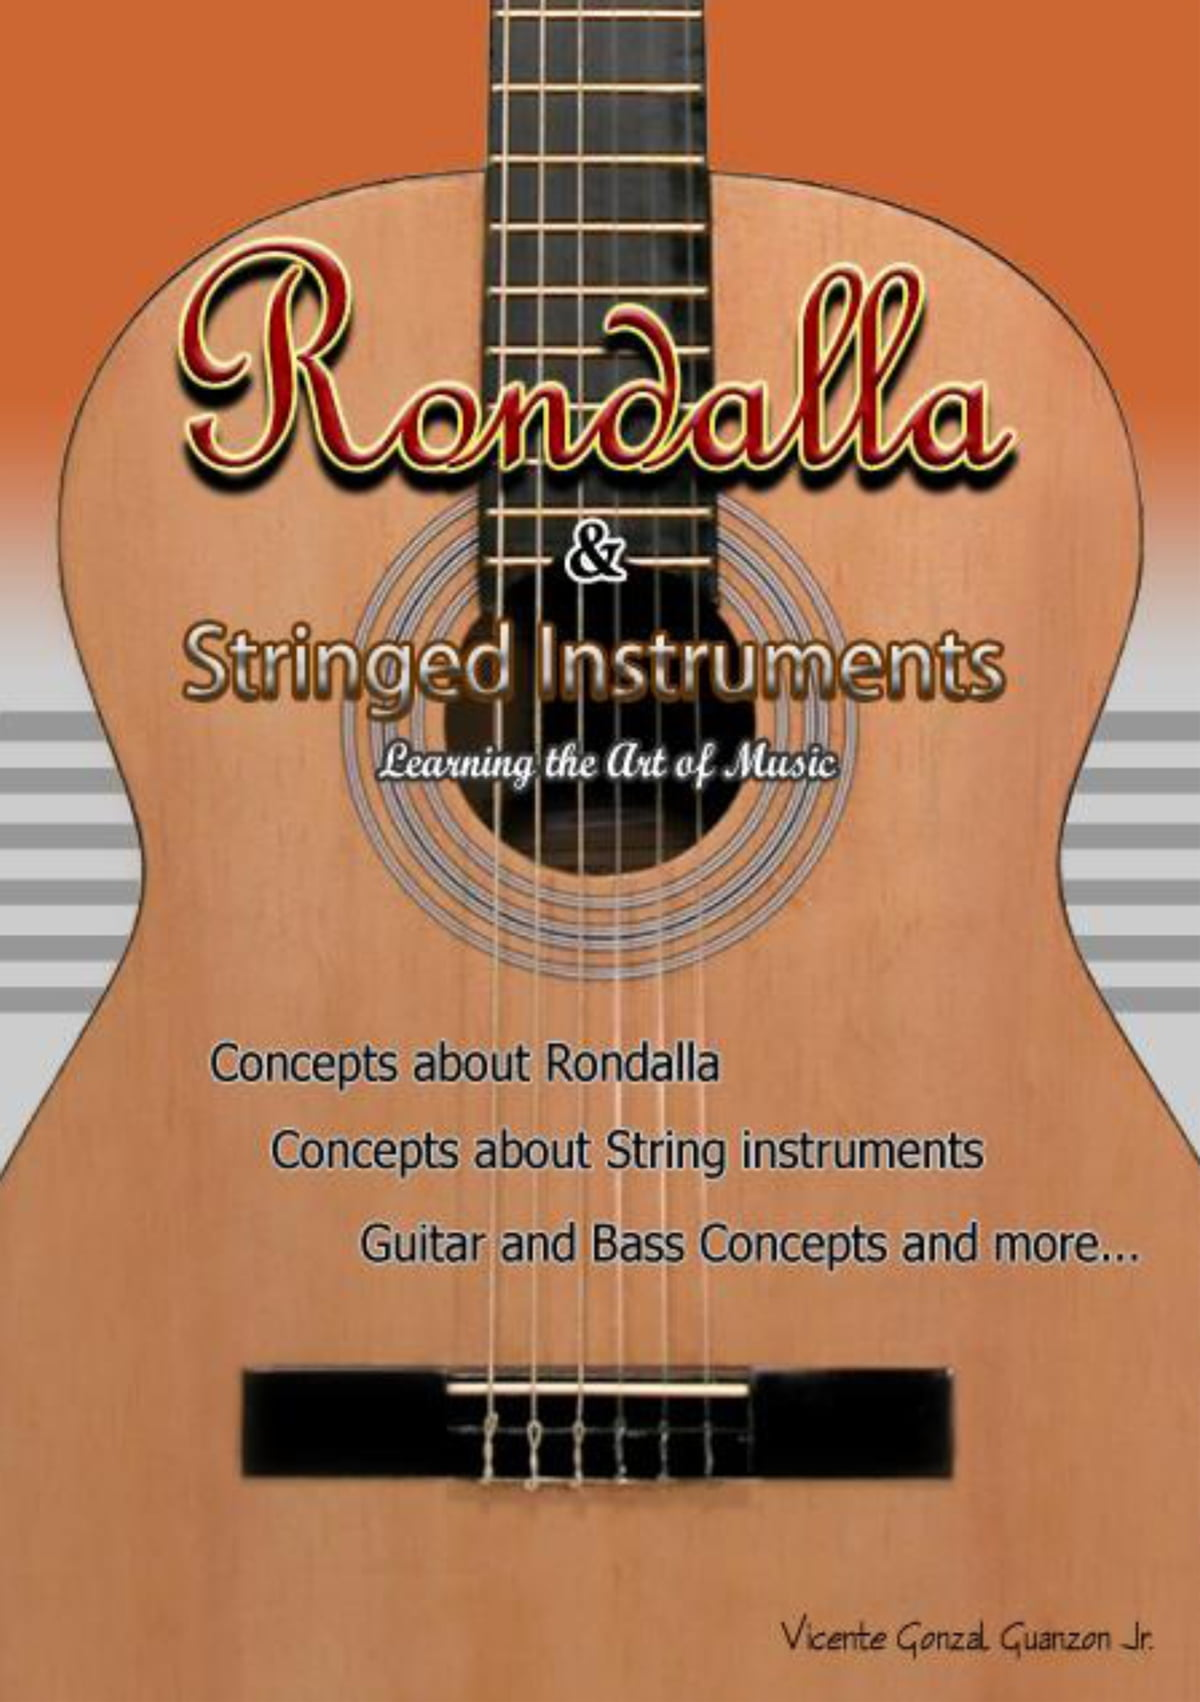 Rondalla And Stringed Instruments Ebook By Vicente Guanzon Jr